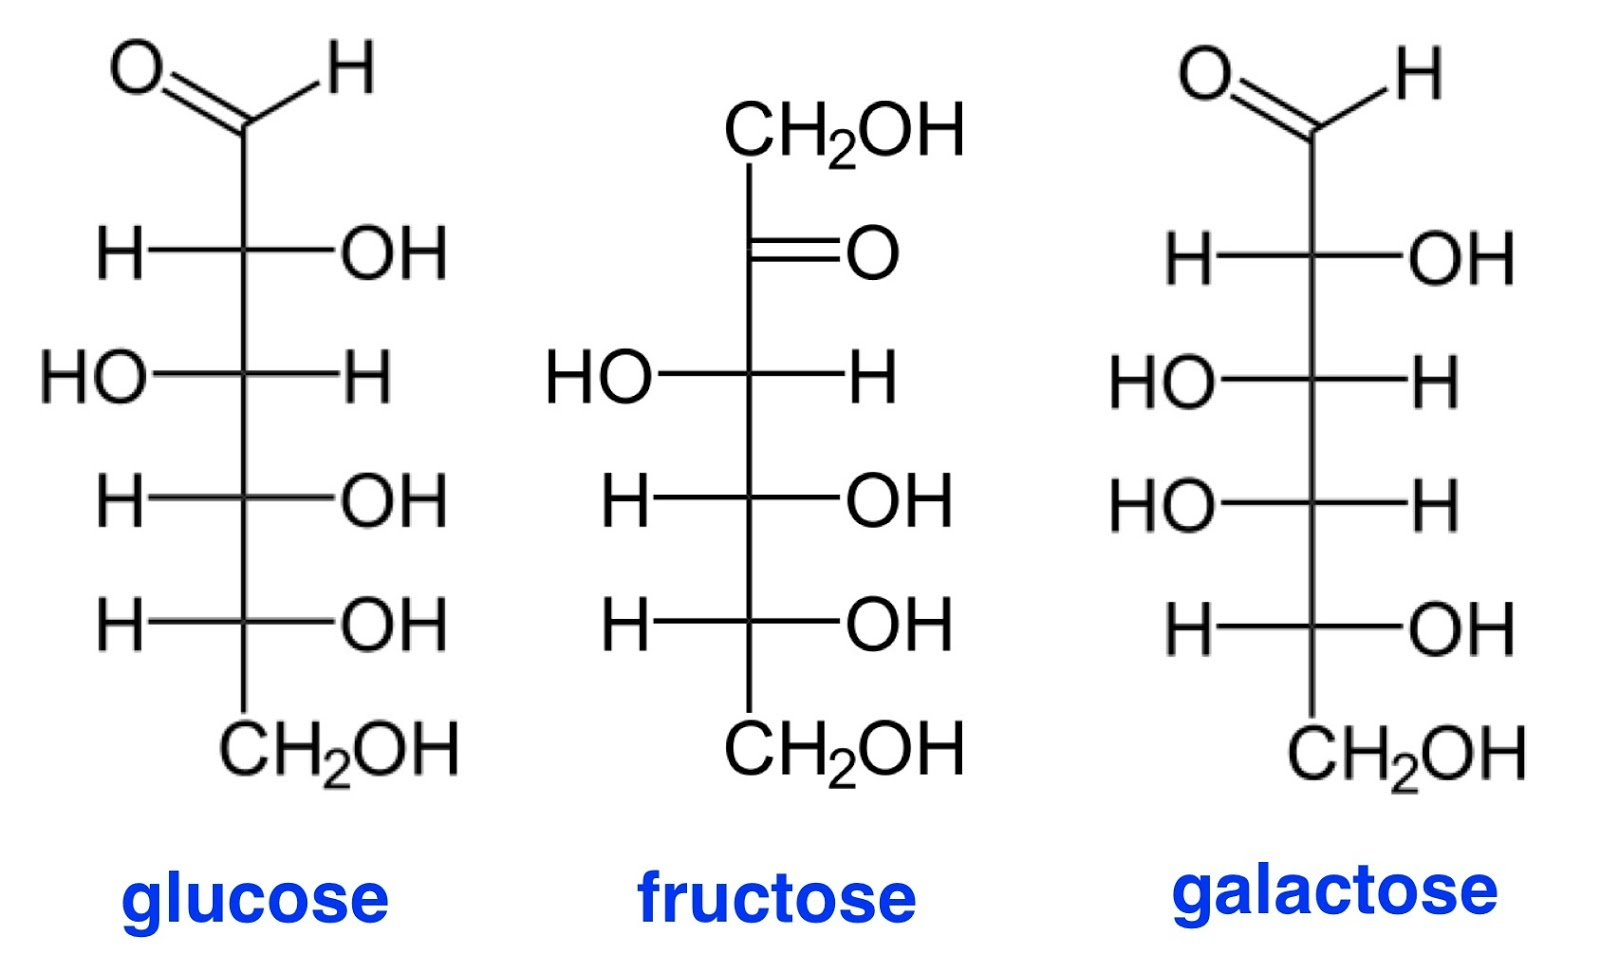 Carbohydrate Structure Diagram Different Parts Of Plant Fructose Molecule Glycogen